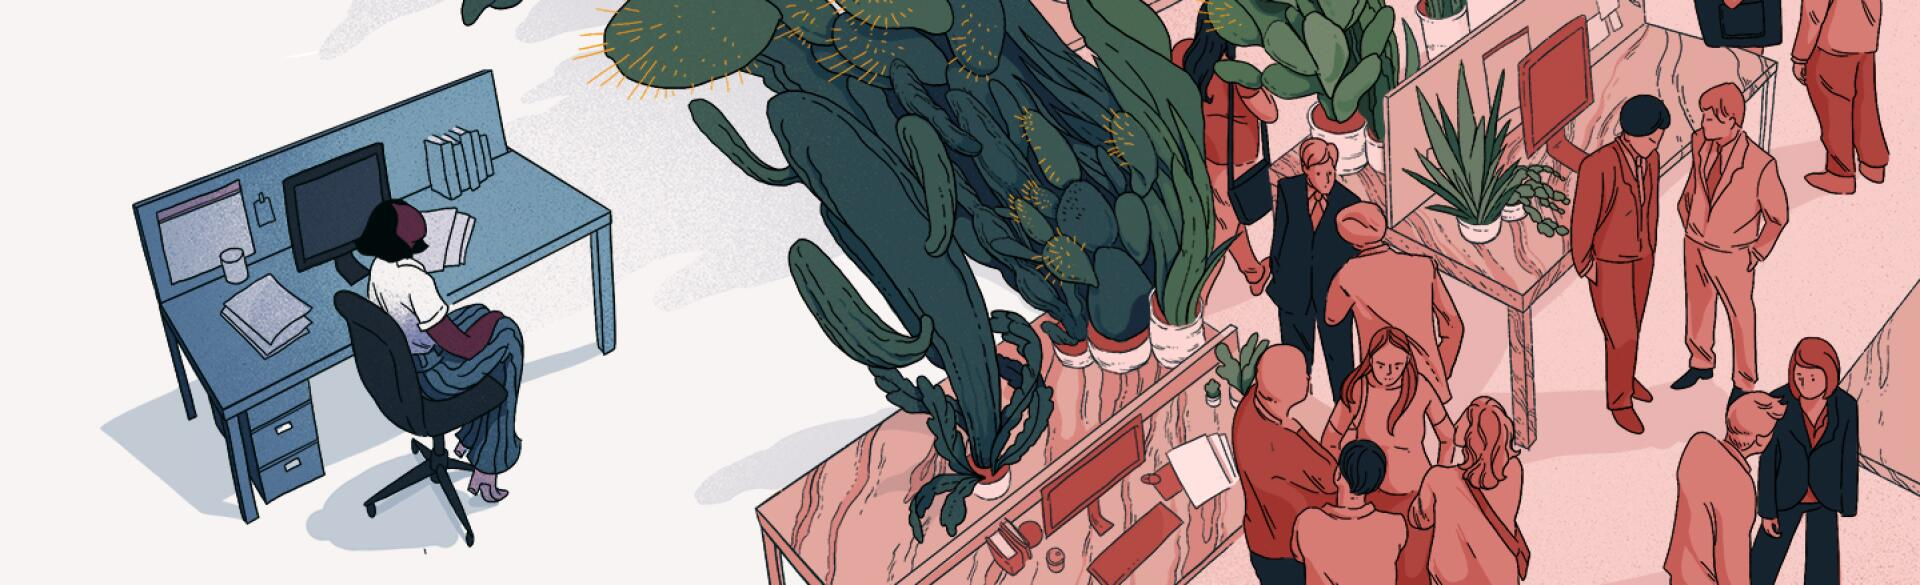 illustration_of_lady_feeling_lonely_in_workplace_by_dani_pendergast_1440x584.jpg